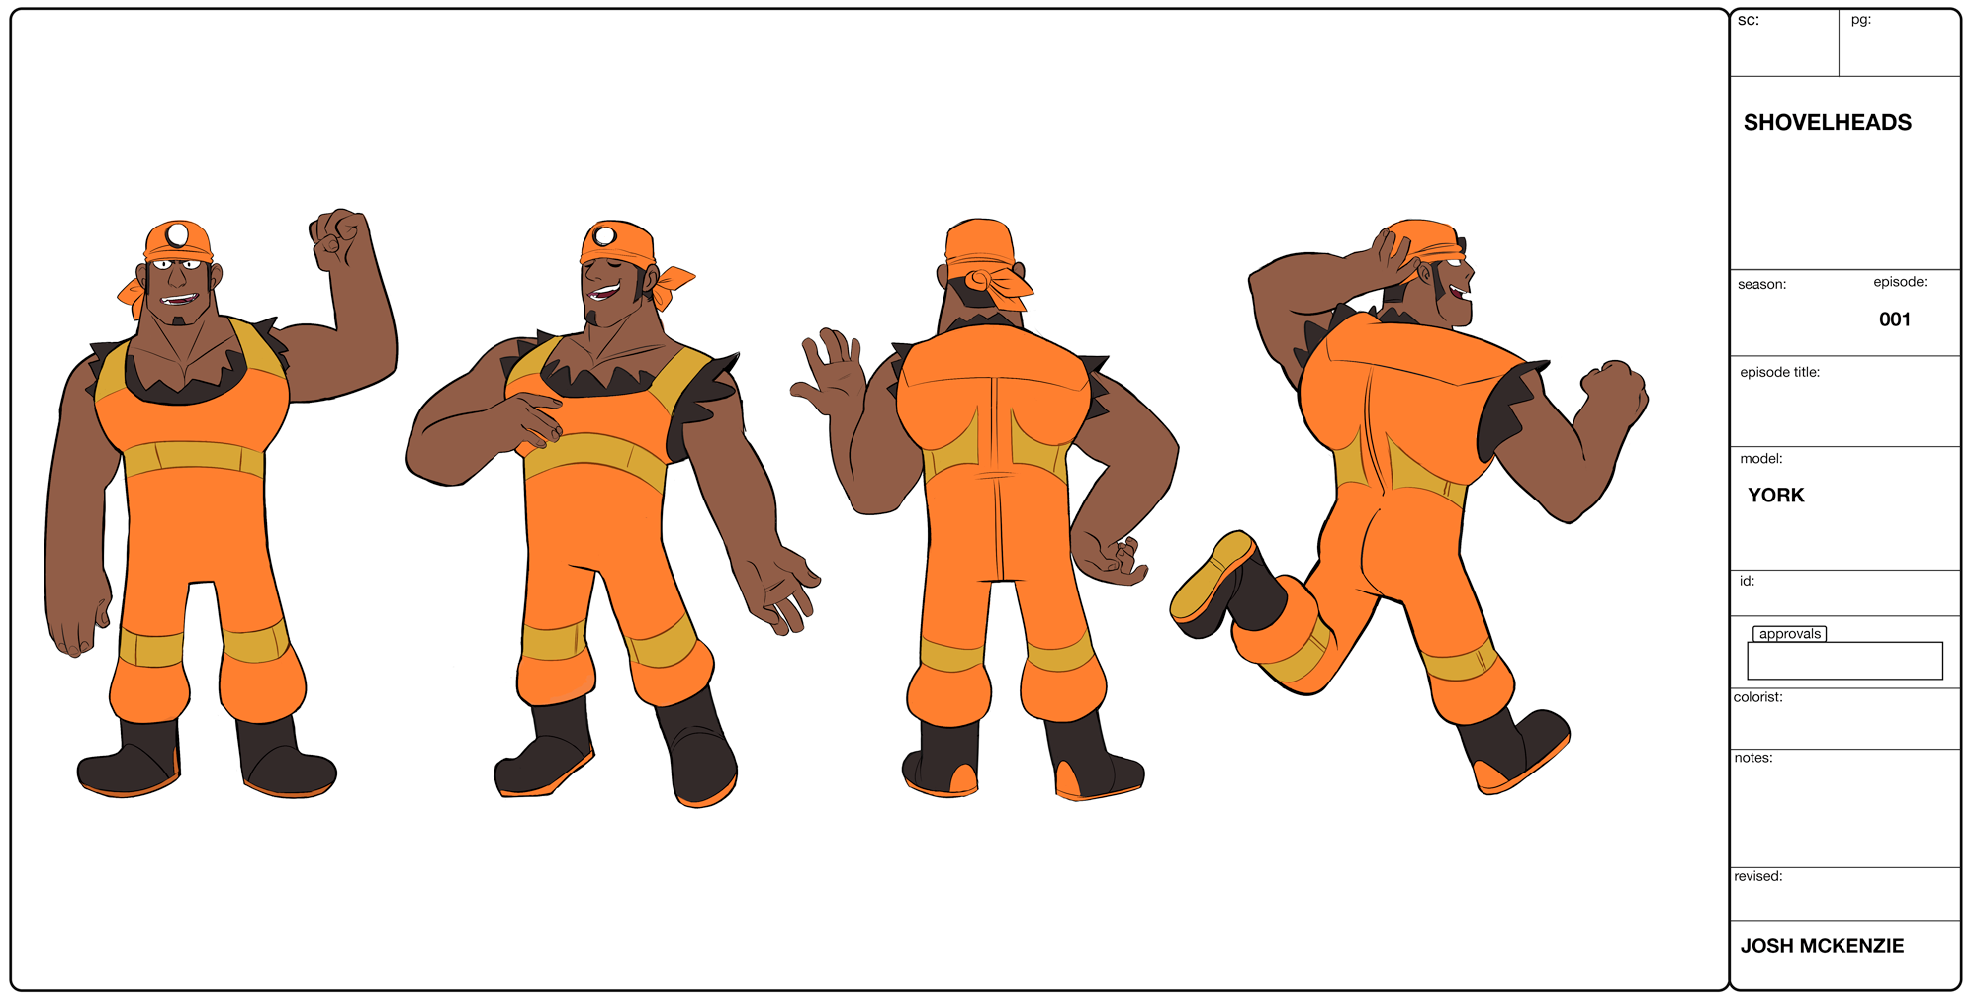 josh mckenzie_character port_safe_Page_03_Image_0001.png